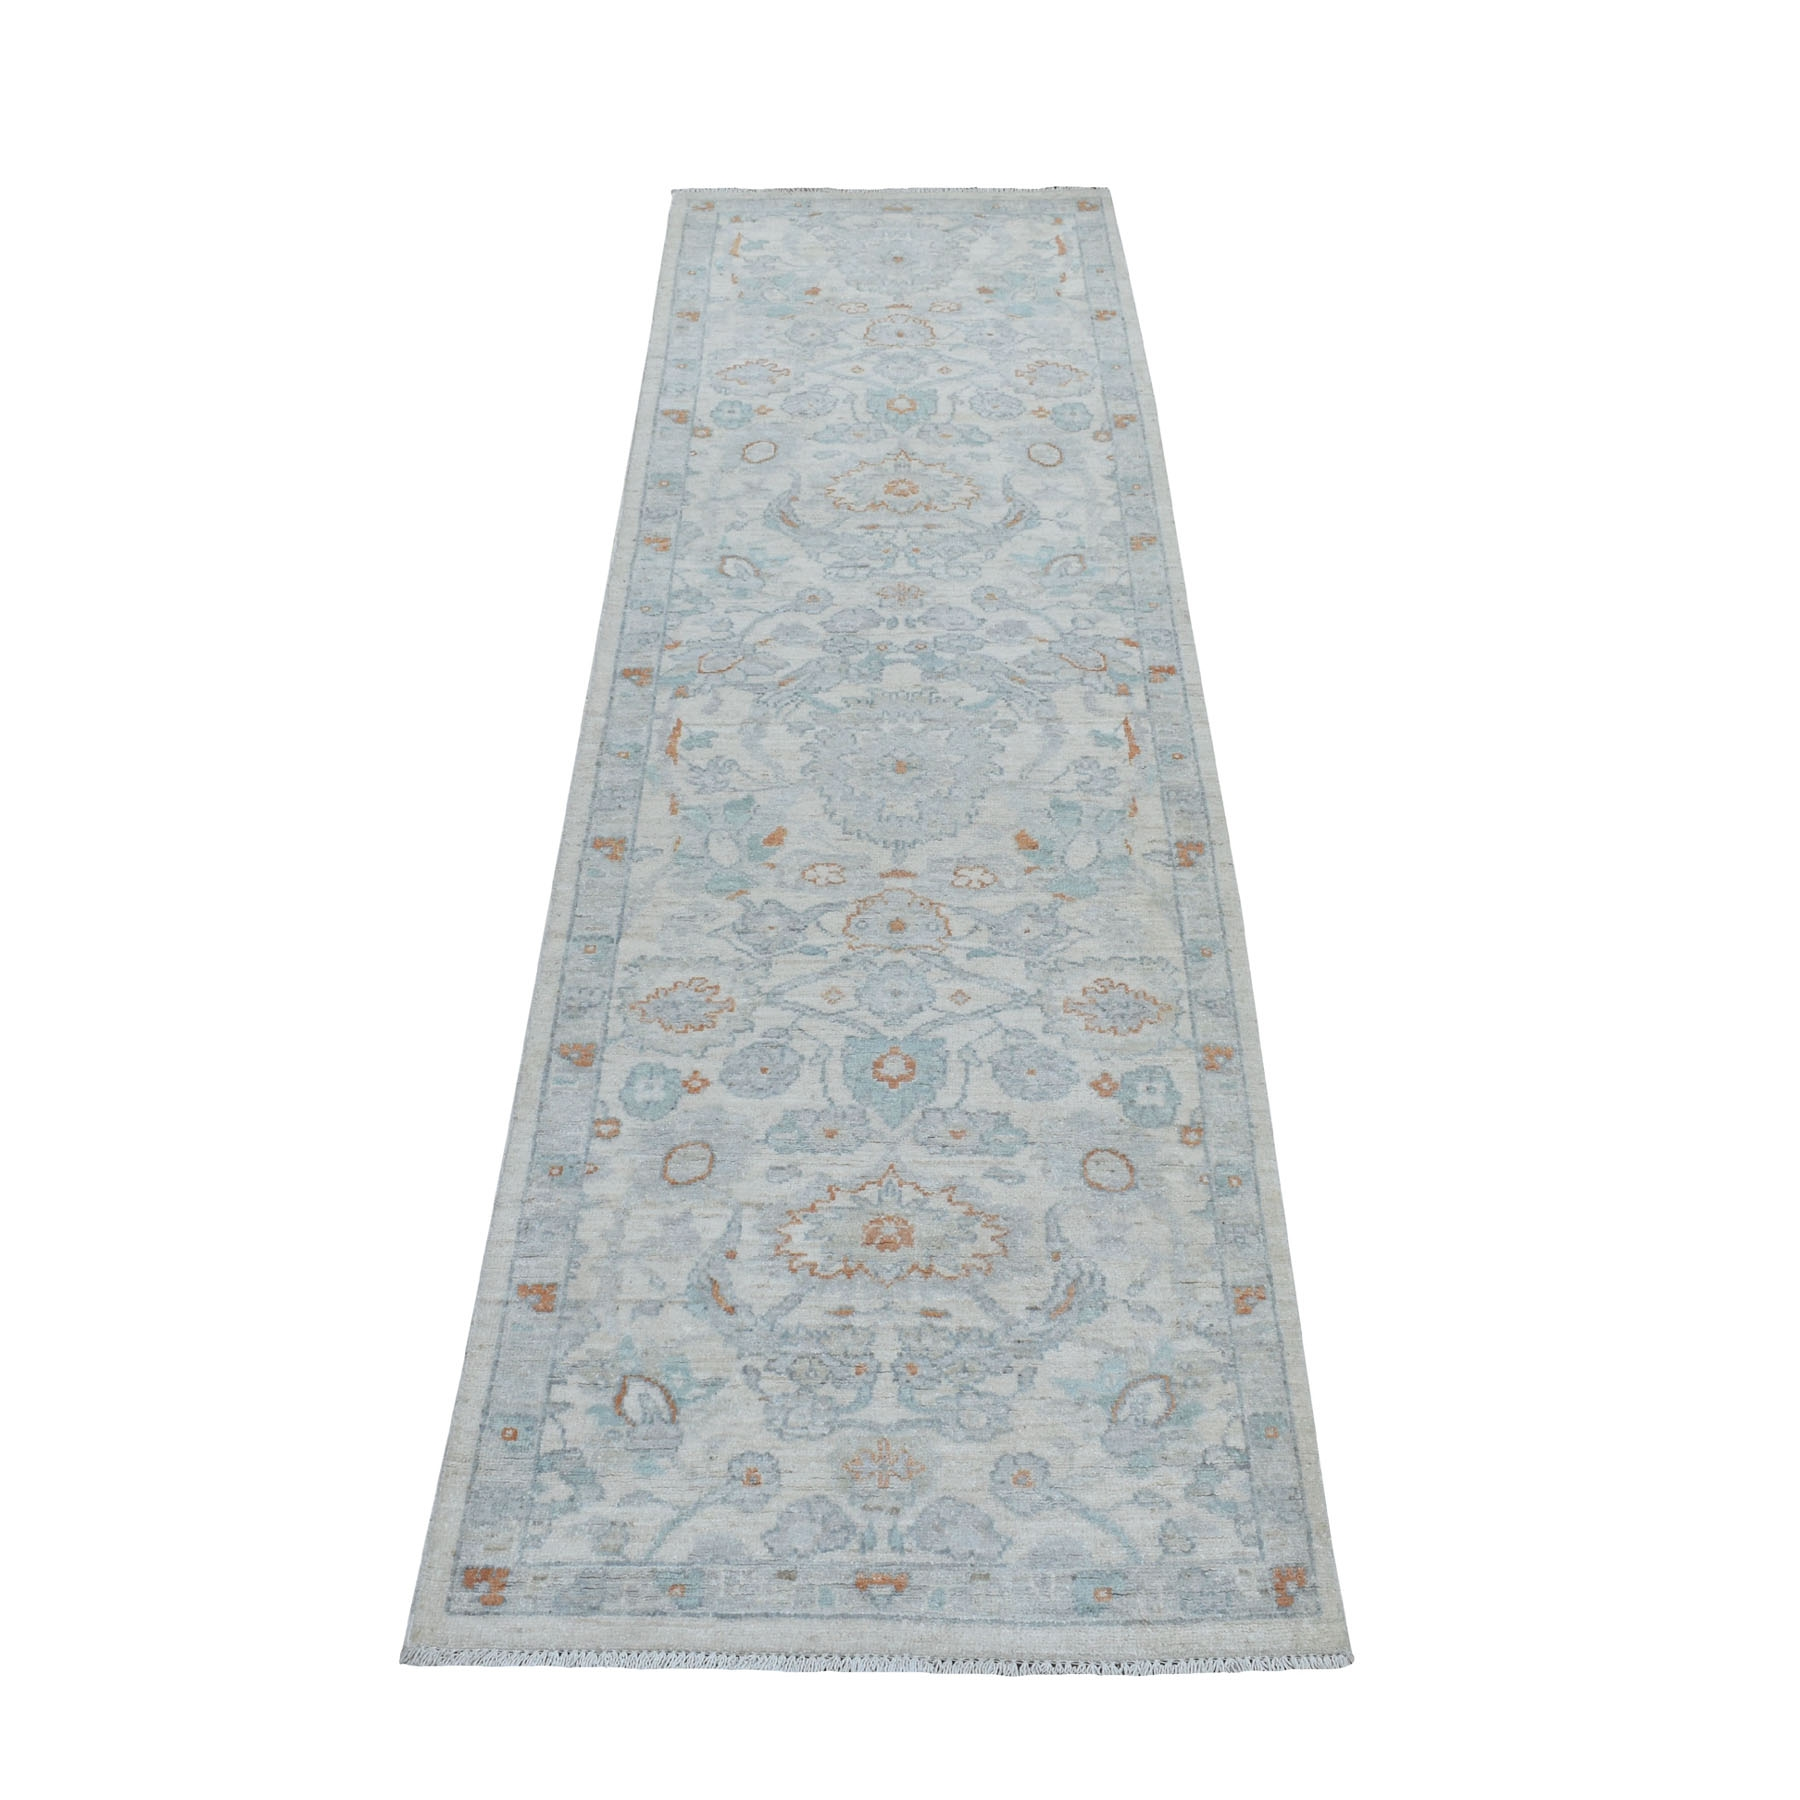 2-6 x8- White Wash Peshawar Pure Wool Hand Knotted Oriental Rug